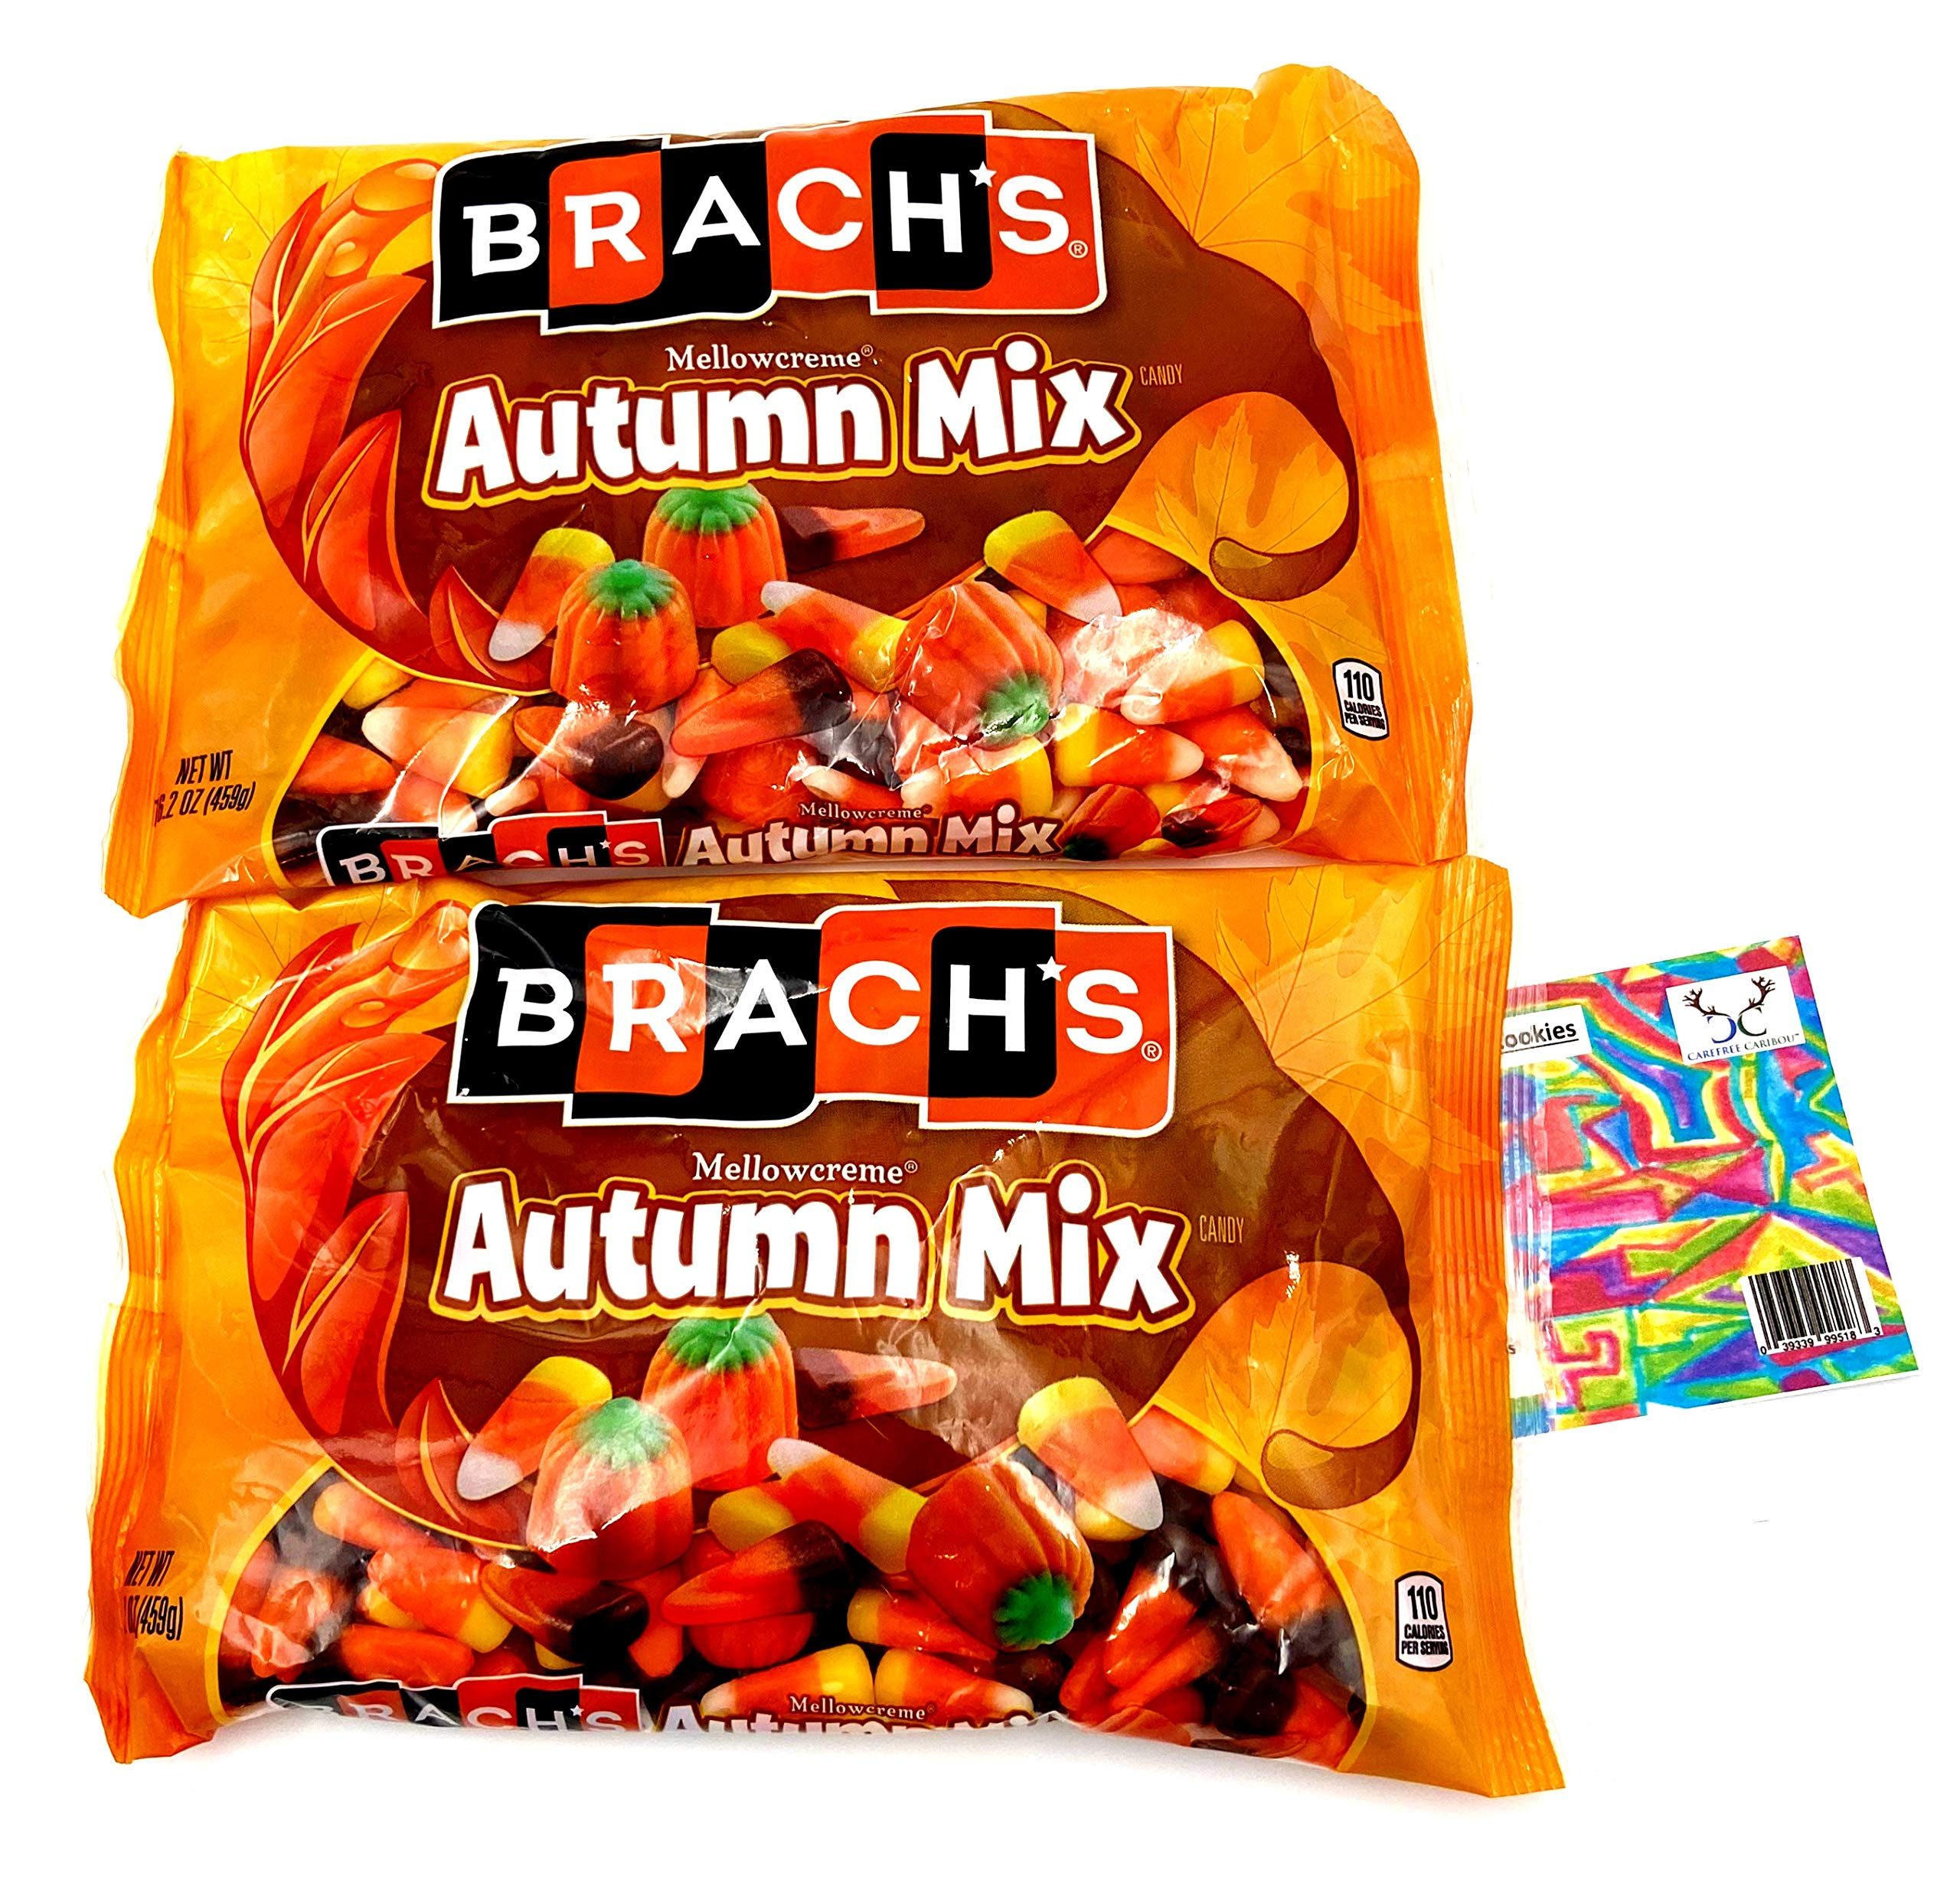 Brach's Autumn Mix Candy Corn Bundle. Two (2) 16.2oz Packages of Brach's Mellowcreme Autumn Mix Candy & Recipe Card from Carefree Caribou. Over Two Pounds of delish Brach's Holiday Candy!